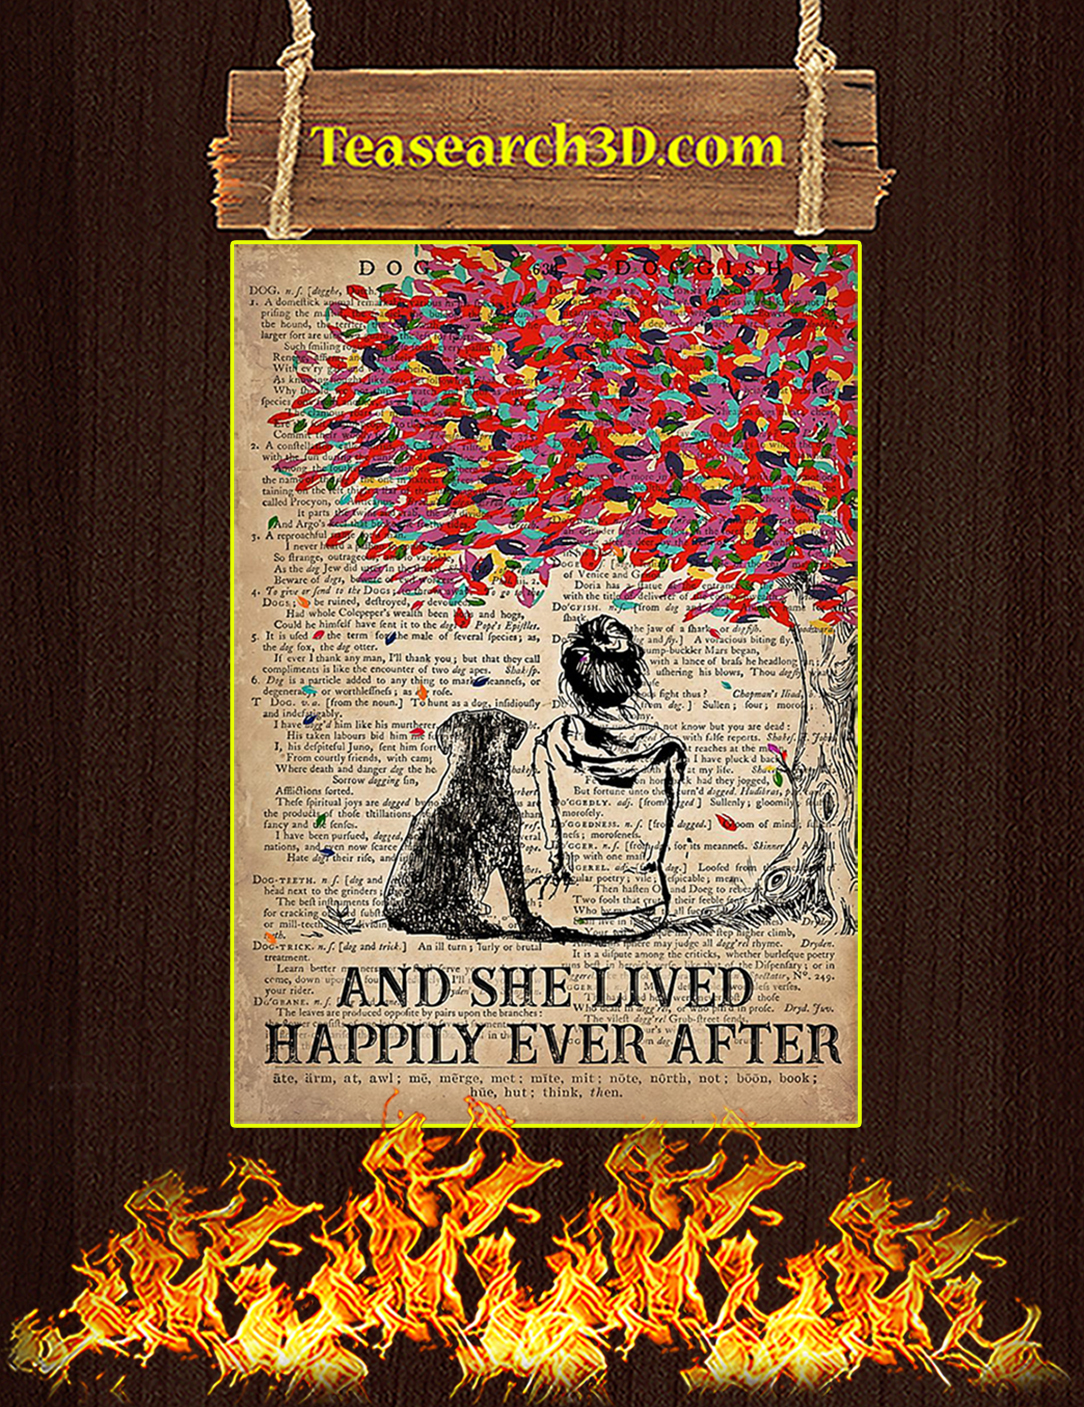 Dog labrador and she lived happily ever after poster A2